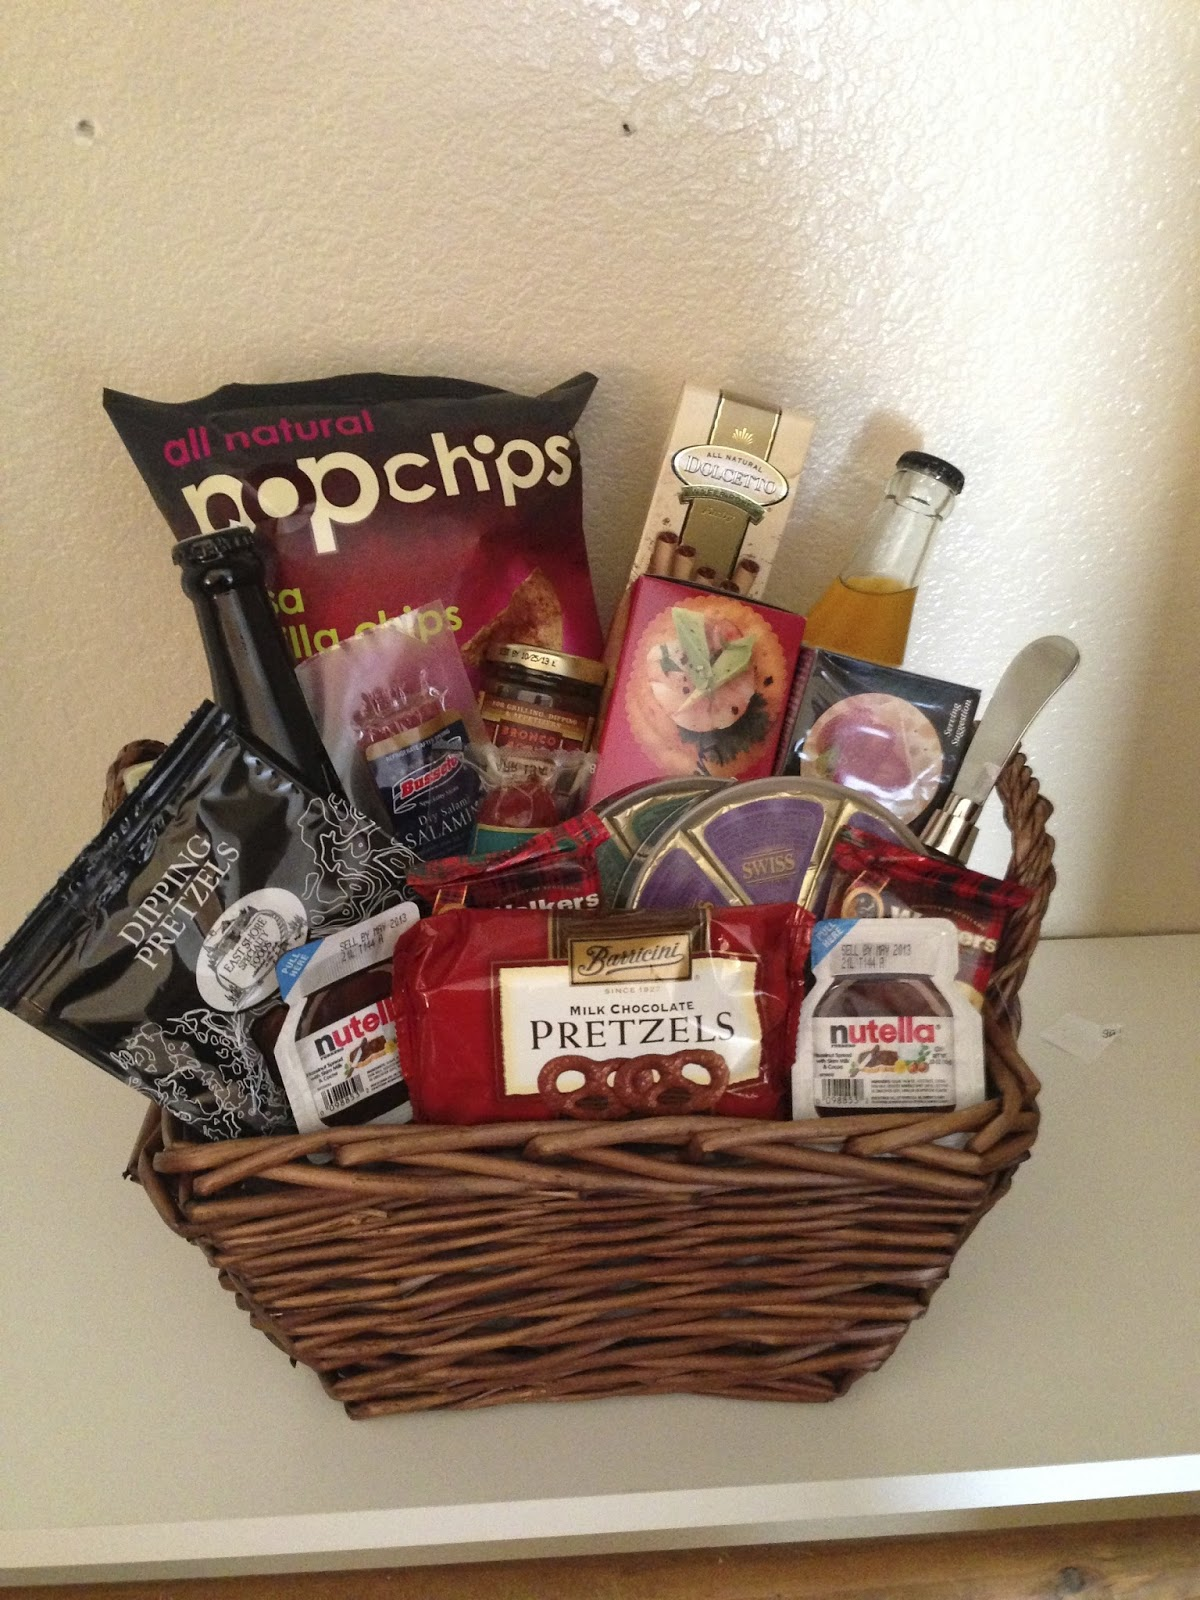 Wedding Gift Baskets For Bride And Groom Ideas : ... Gift Basket or Wedding Night Midnight Snack for Bride and Groom